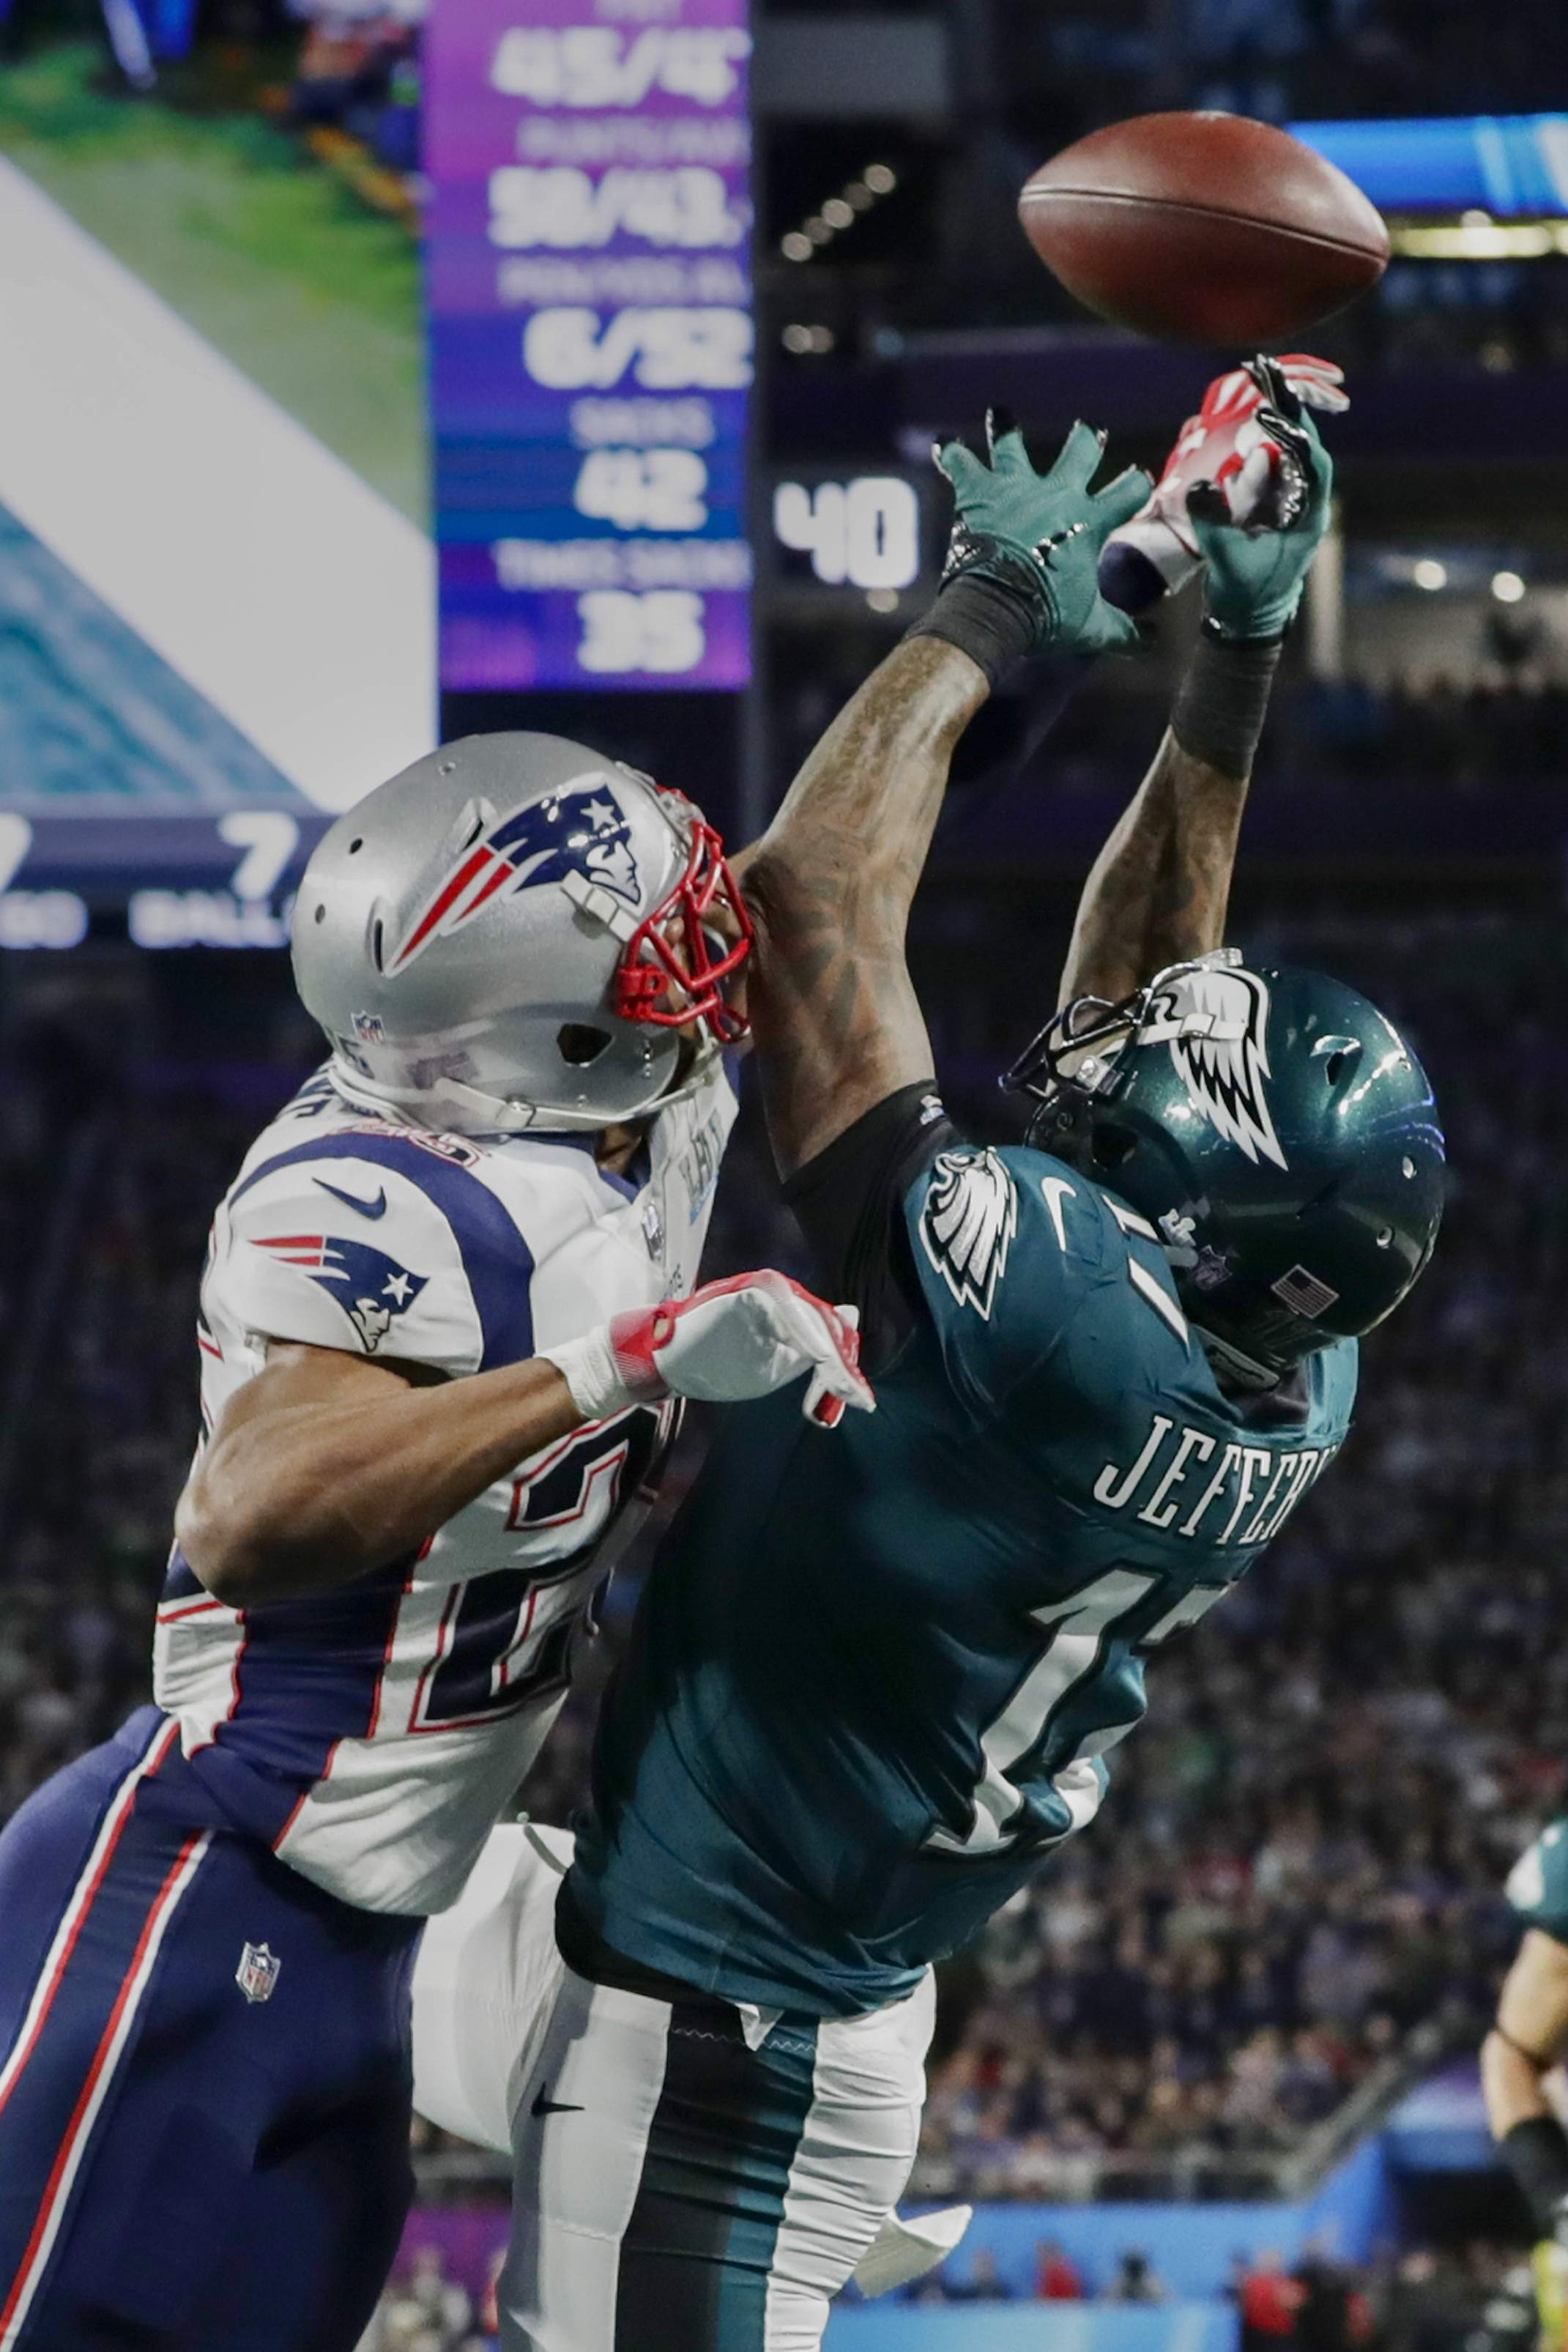 New England Patriots cornerback Eric Rowe (25) breaks up a pass in the end zone intended for Philadelphia Eagles wide receiver Alshon Jeffery (17), during the first half of the NFL Super Bowl 52 football game Sunday, Feb. 4, 2018, in Minneapolis. (AP Photo/Frank Franklin II)